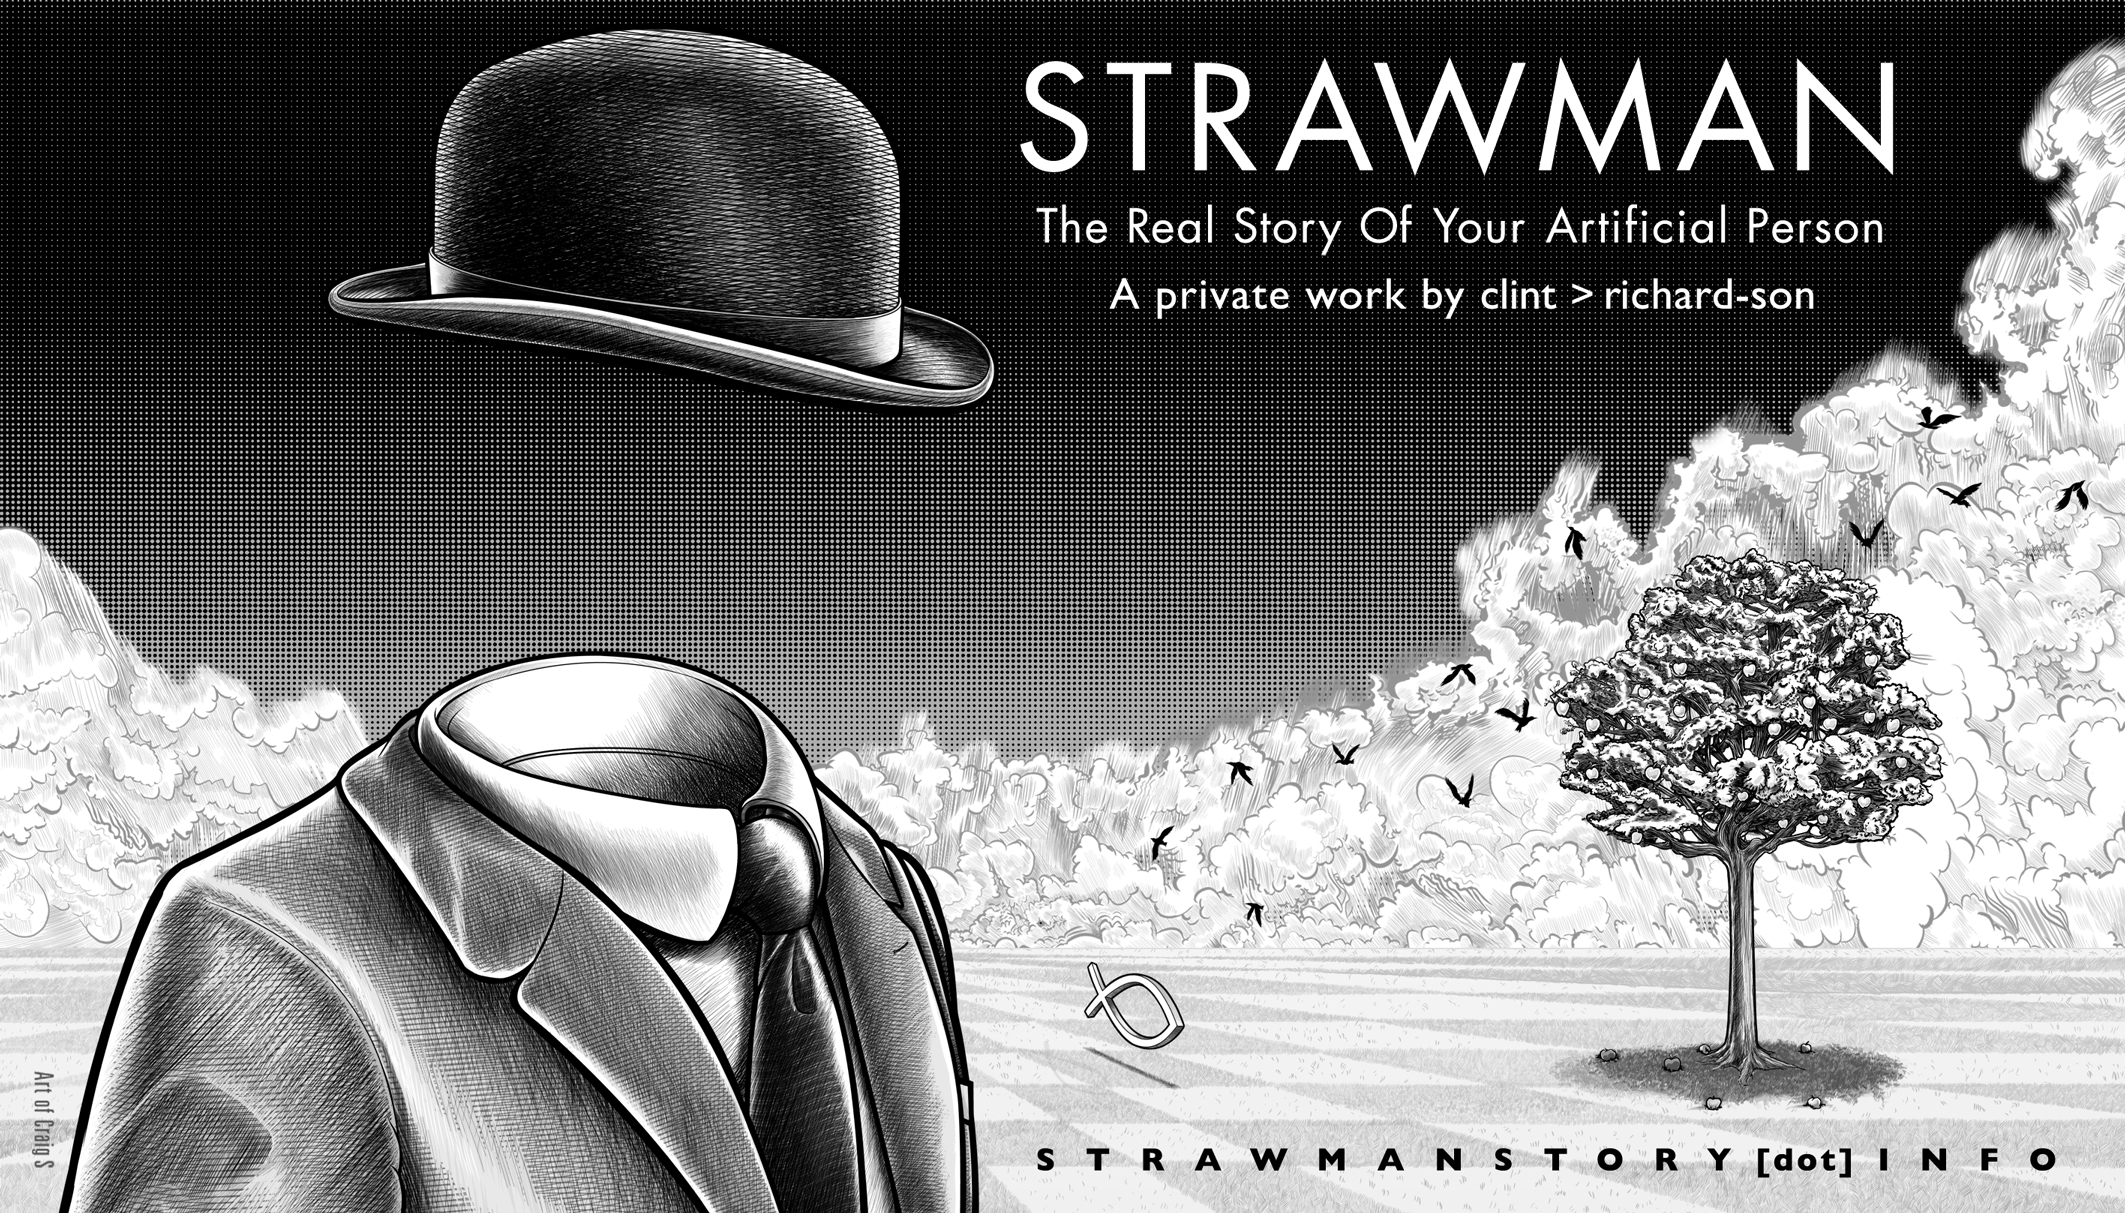 002_present_showcase_coverGraphic_strawman_story_2125px_width